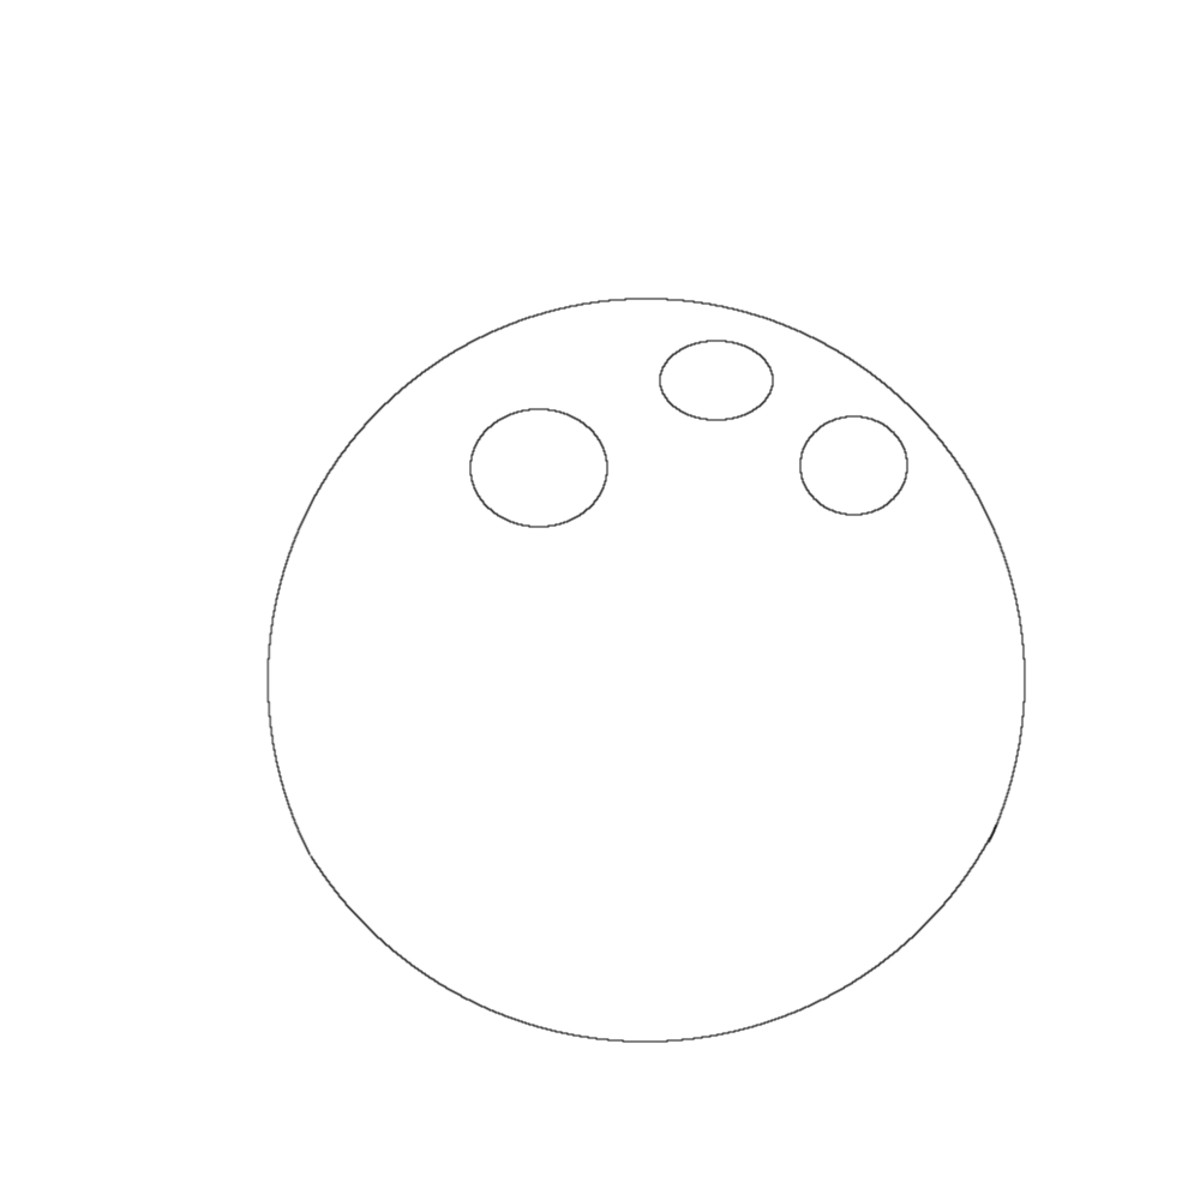 How to draw an angry bird with the eyes added to the body.